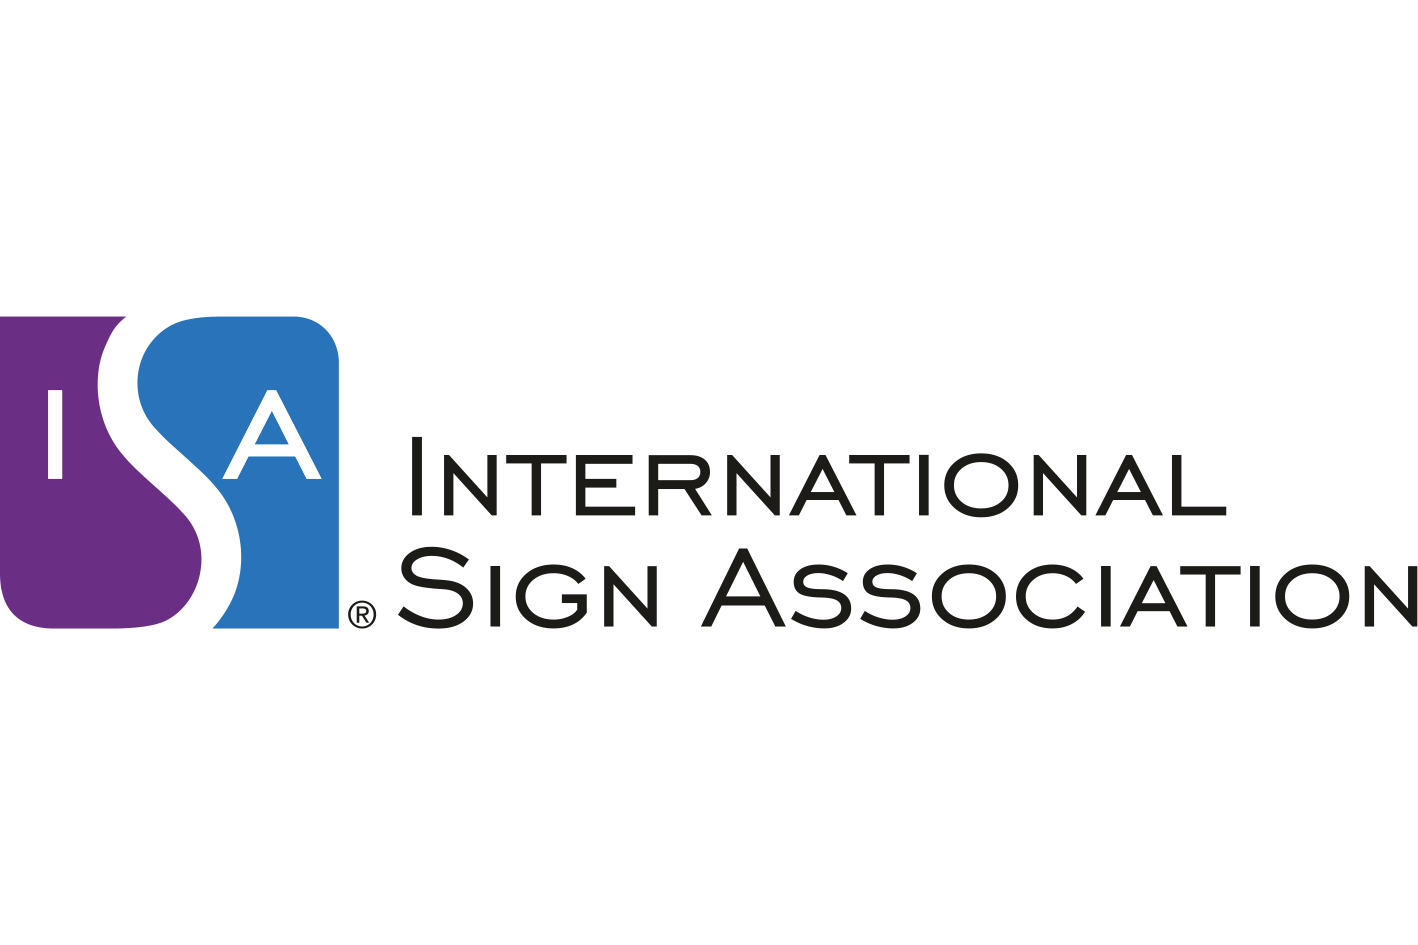 Altay Werbung Verbände - ISA - International Sign Association